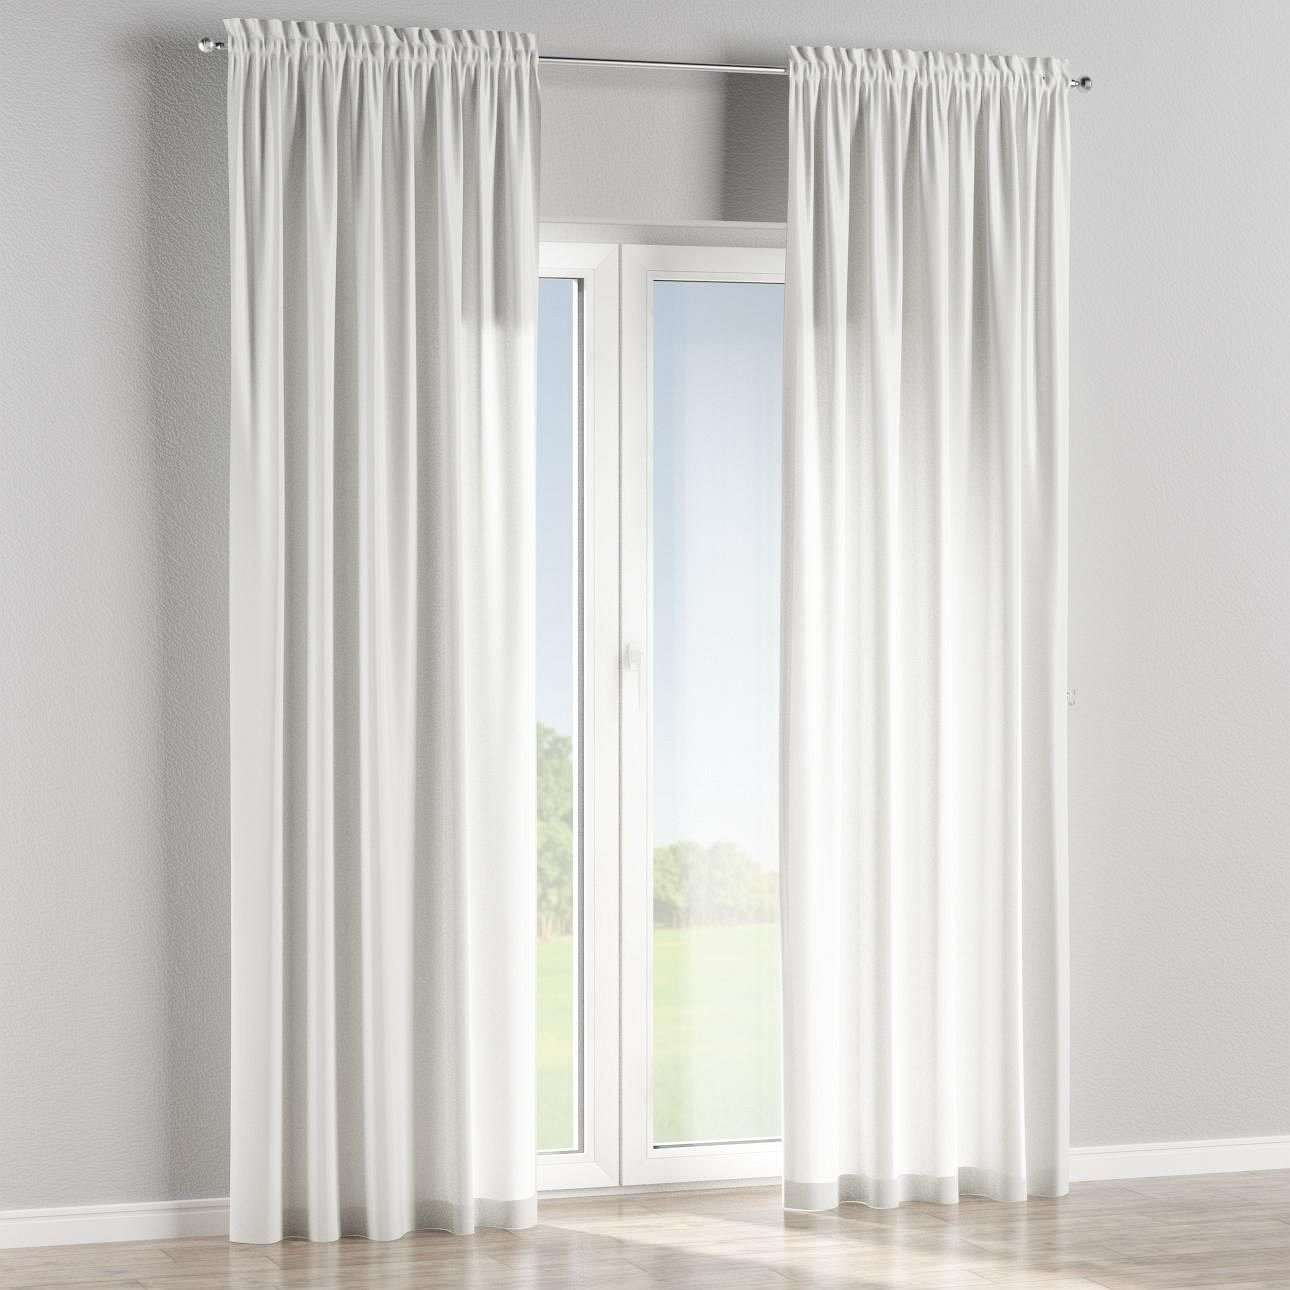 Slot and frill curtains in collection Flowers, fabric: 311-06